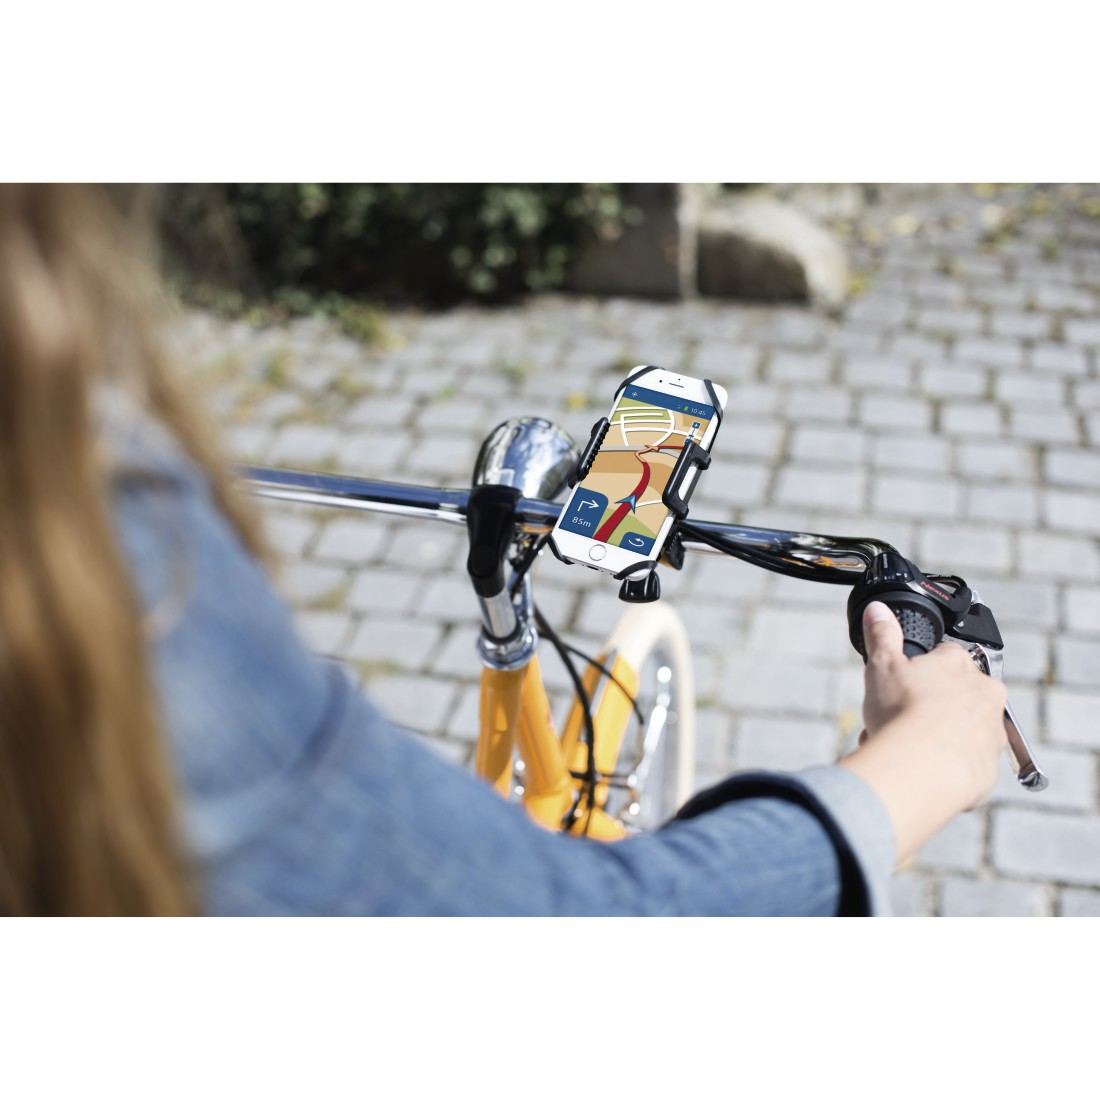 awx2 High-Res Appliance 2 - Hama, Universal Smartphone Bike Holder for devices with a width between 5 to 9 cm